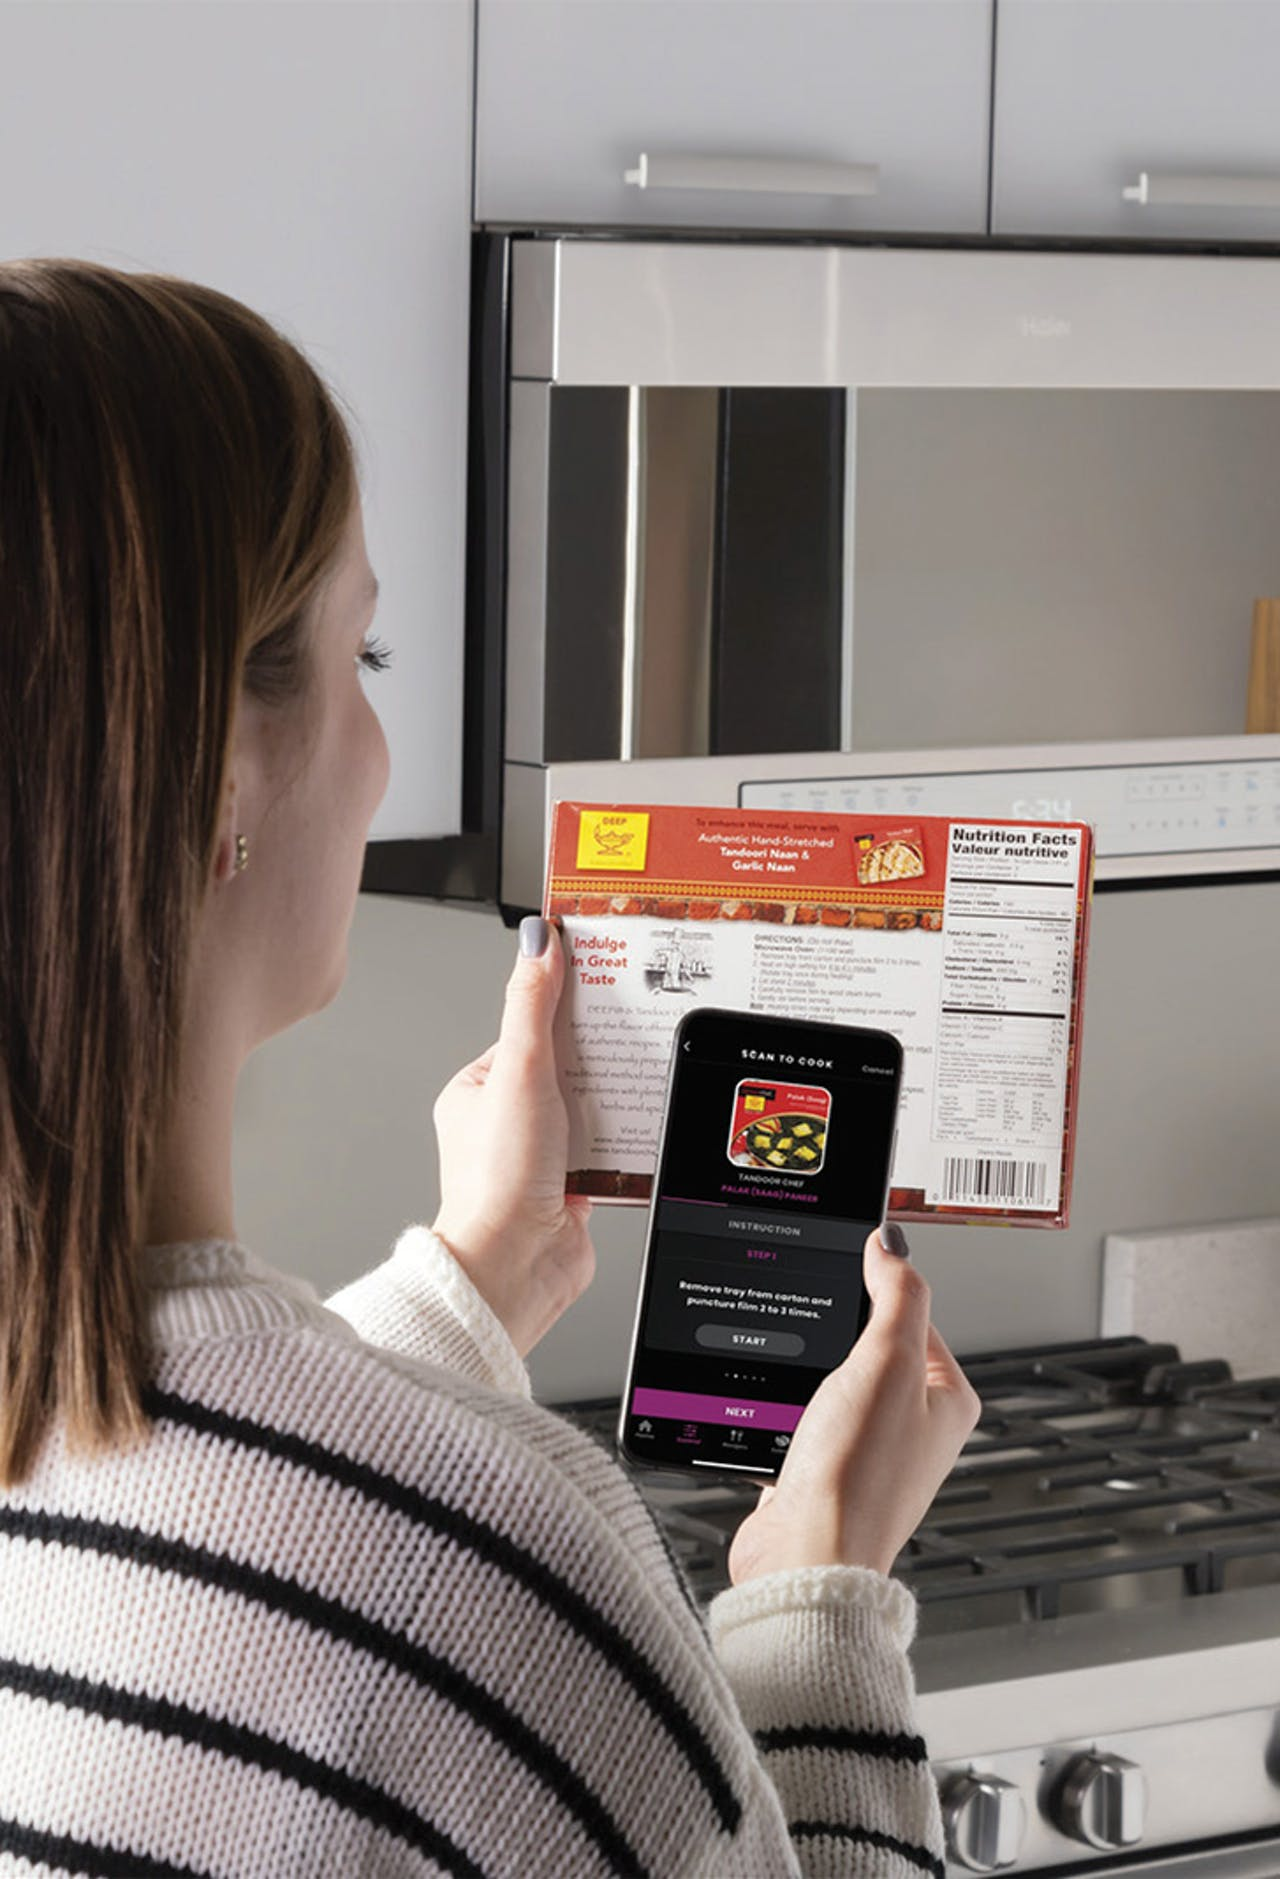 Woman using the scan-to-cook function from the SmartHQ app on her phonne